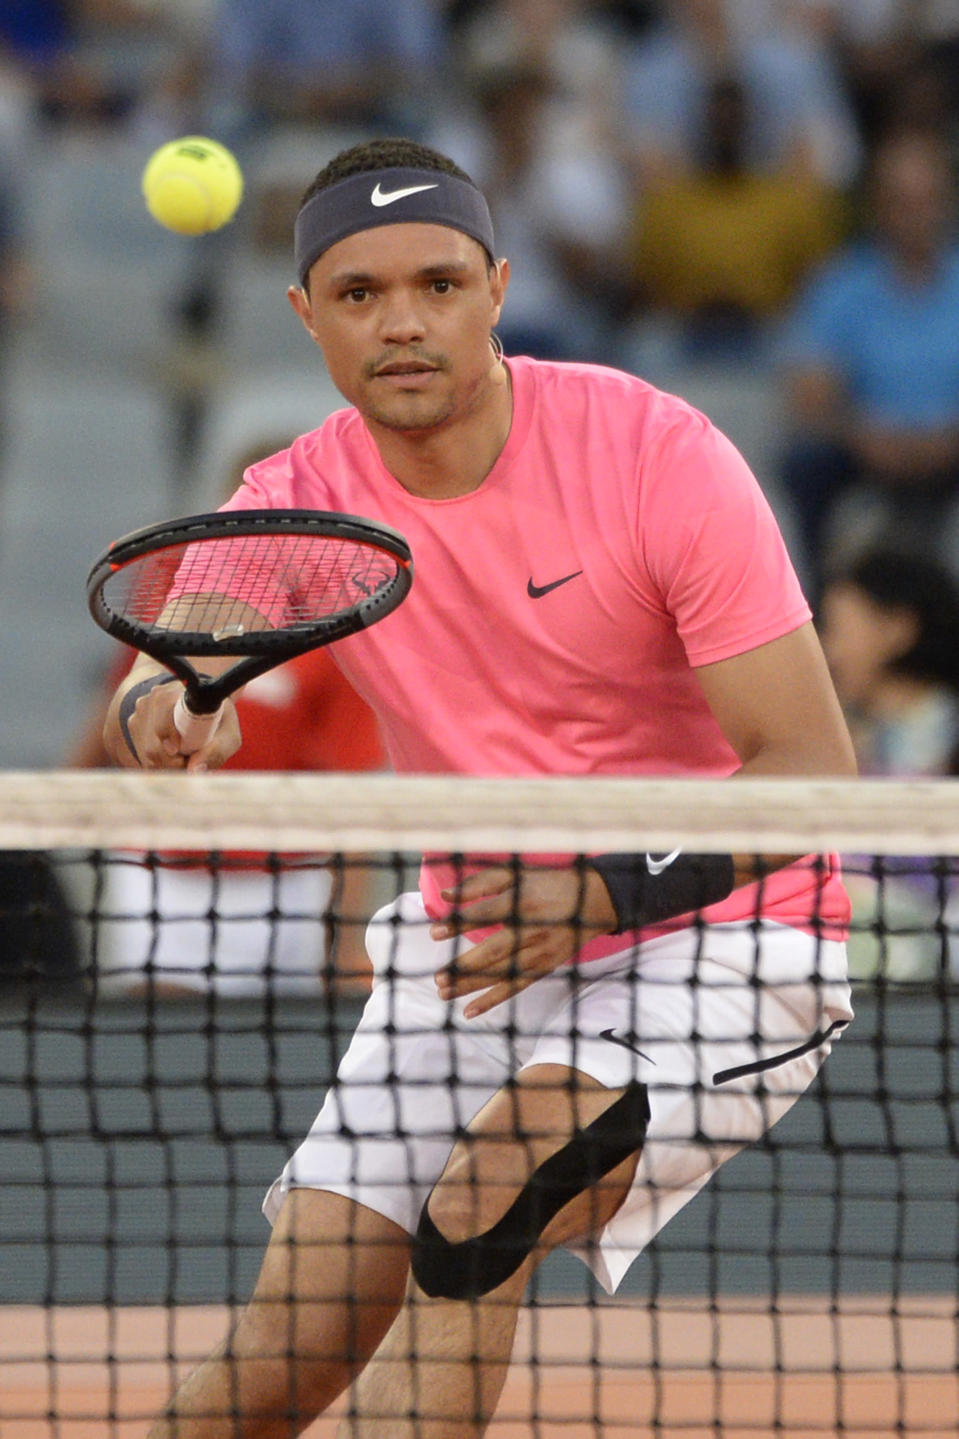 Here seen playing in February 2020 charity event The Match with Roger Federer, Rafael Nadal, and Bill Gates, Trevor Noah will soon test his video game skills for Quibi's 'Player vs. Player.'